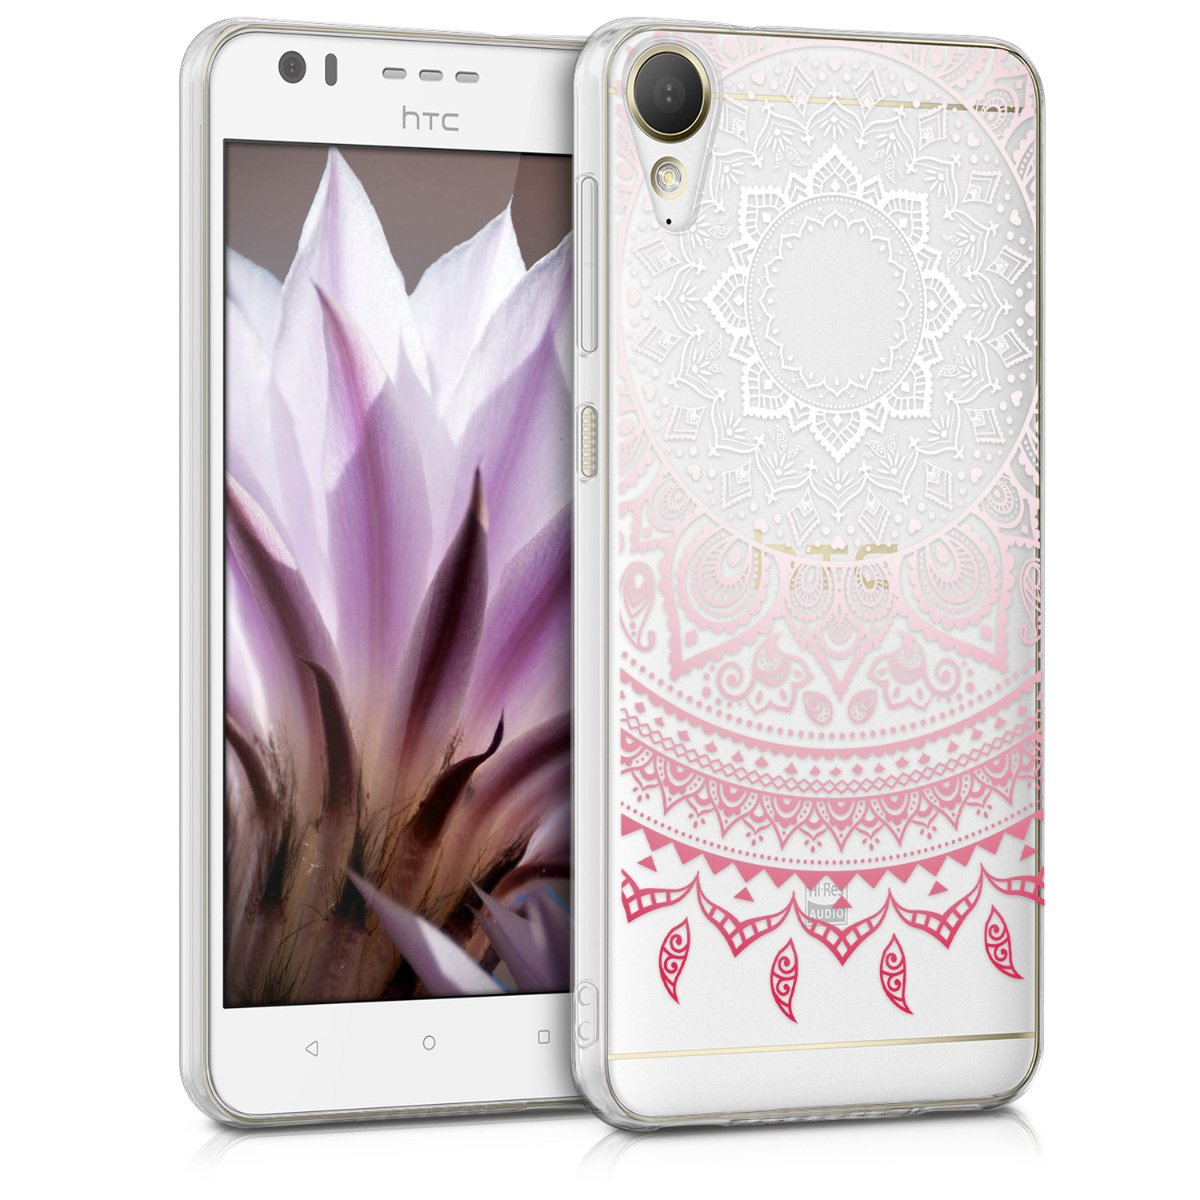 kwmobile TPU Silicone Case for HTC Desire 10 Lifestyle - Crystal Clear Smartphone Back Case Protective Cover - Light Pink/White/Transparent